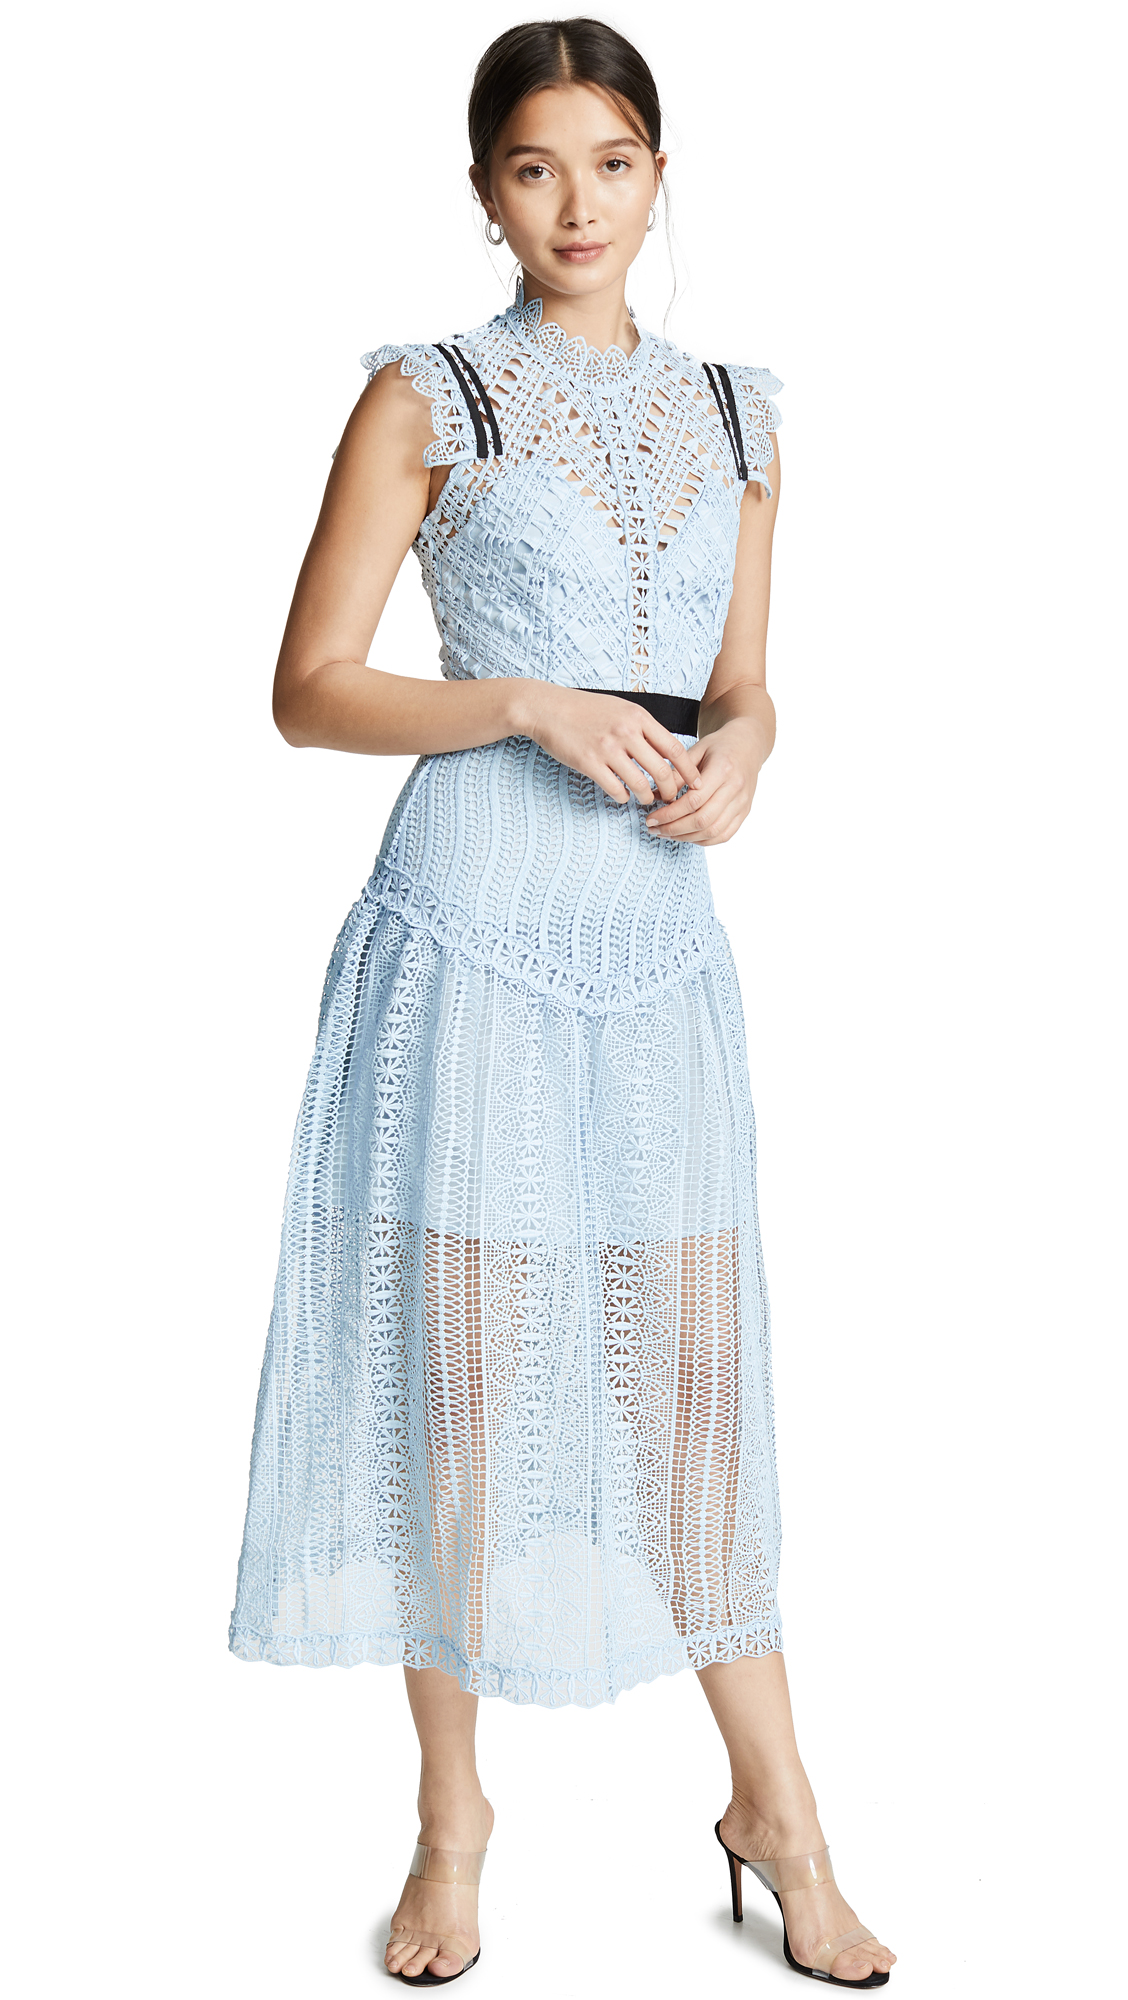 Self Portrait Abstract Lace Midi Dress - Blue